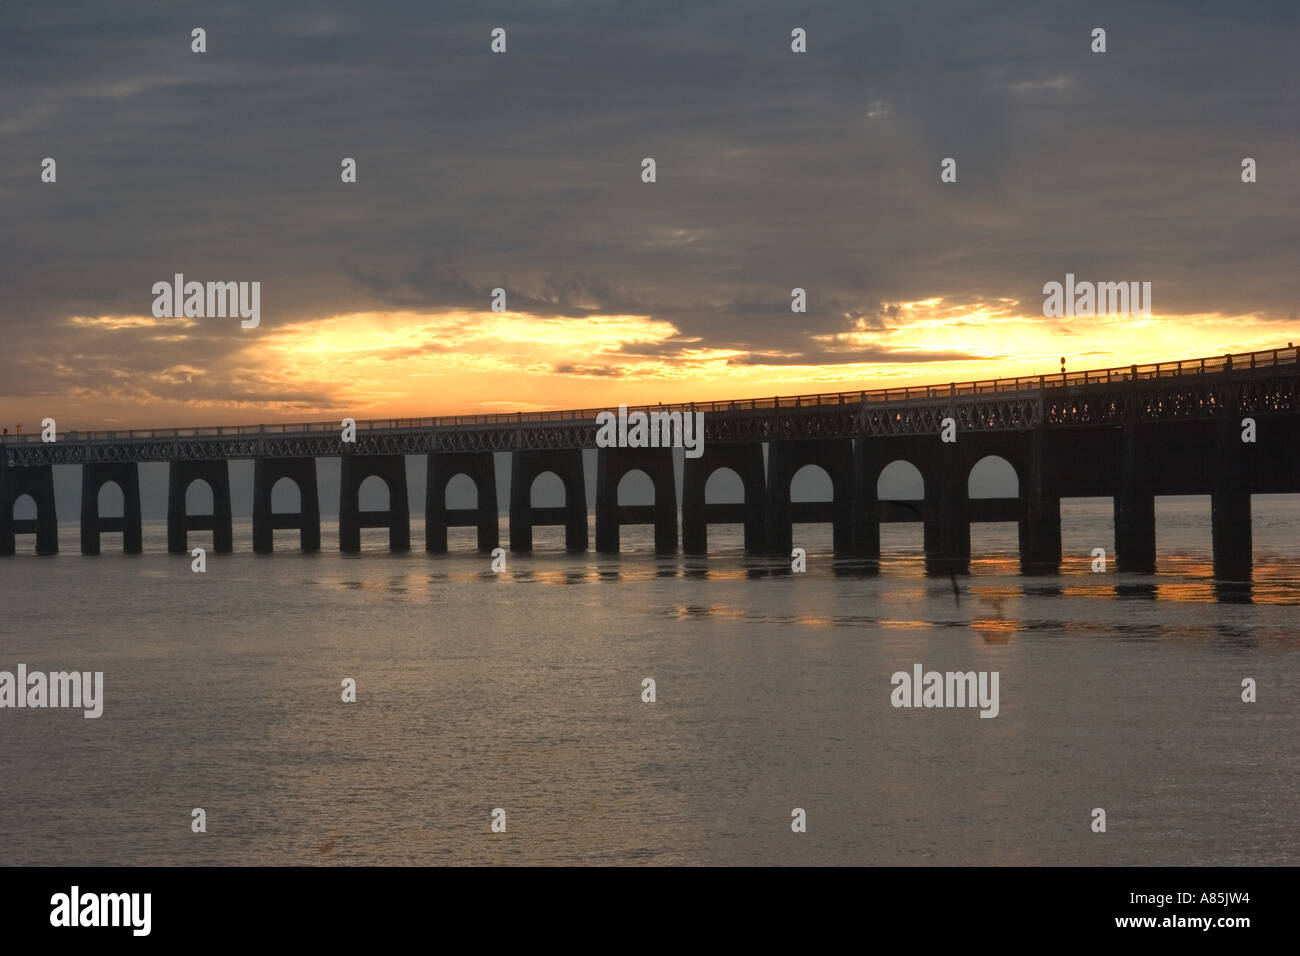 Sunset over The Tay Railway Bridge Dundee, Tayside, Scotland, uk - Stock Image